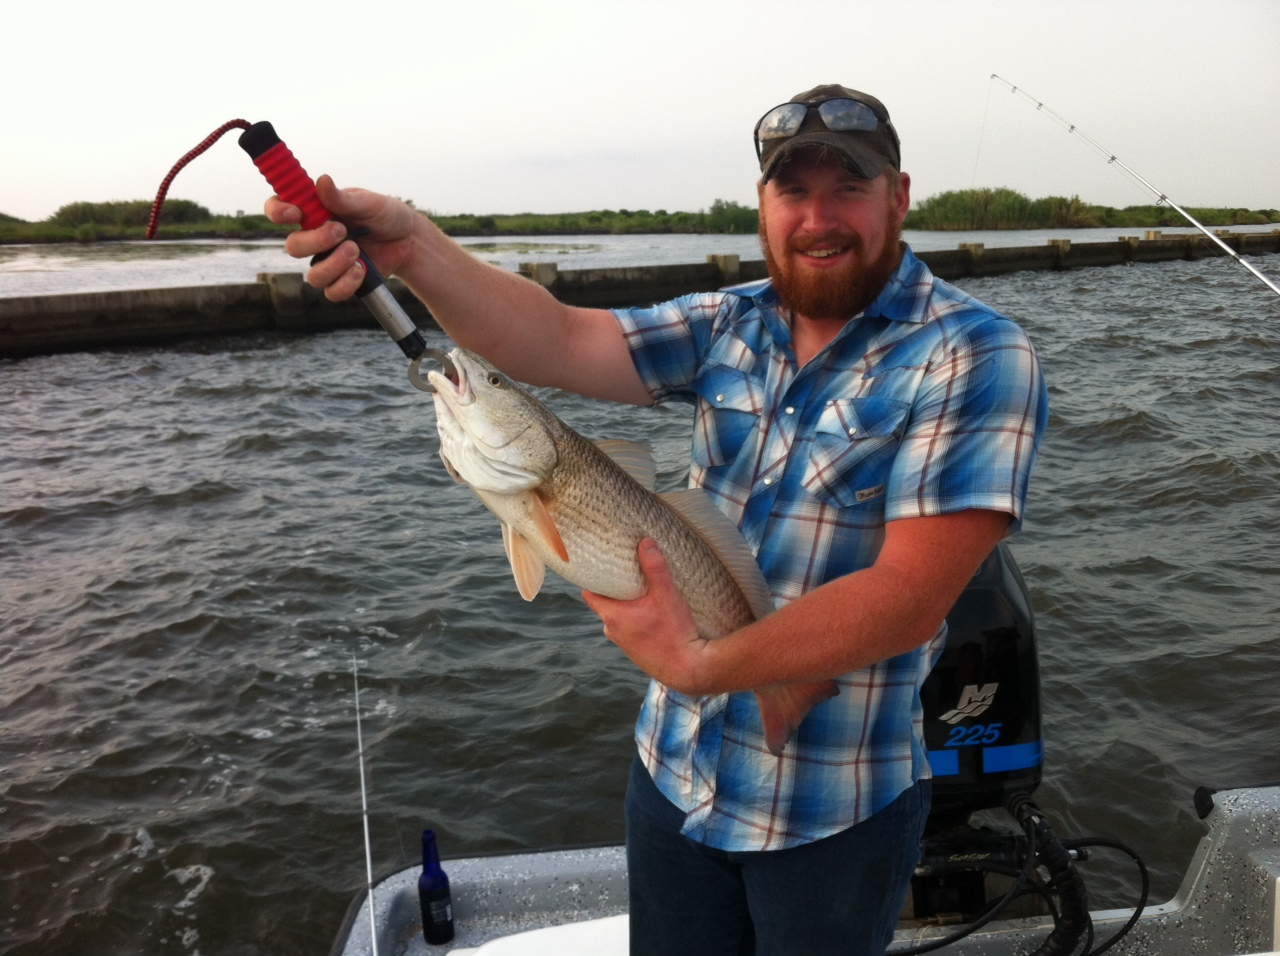 5 29 2012 red fish red fish red fish in new orleans for Fishing new orleans